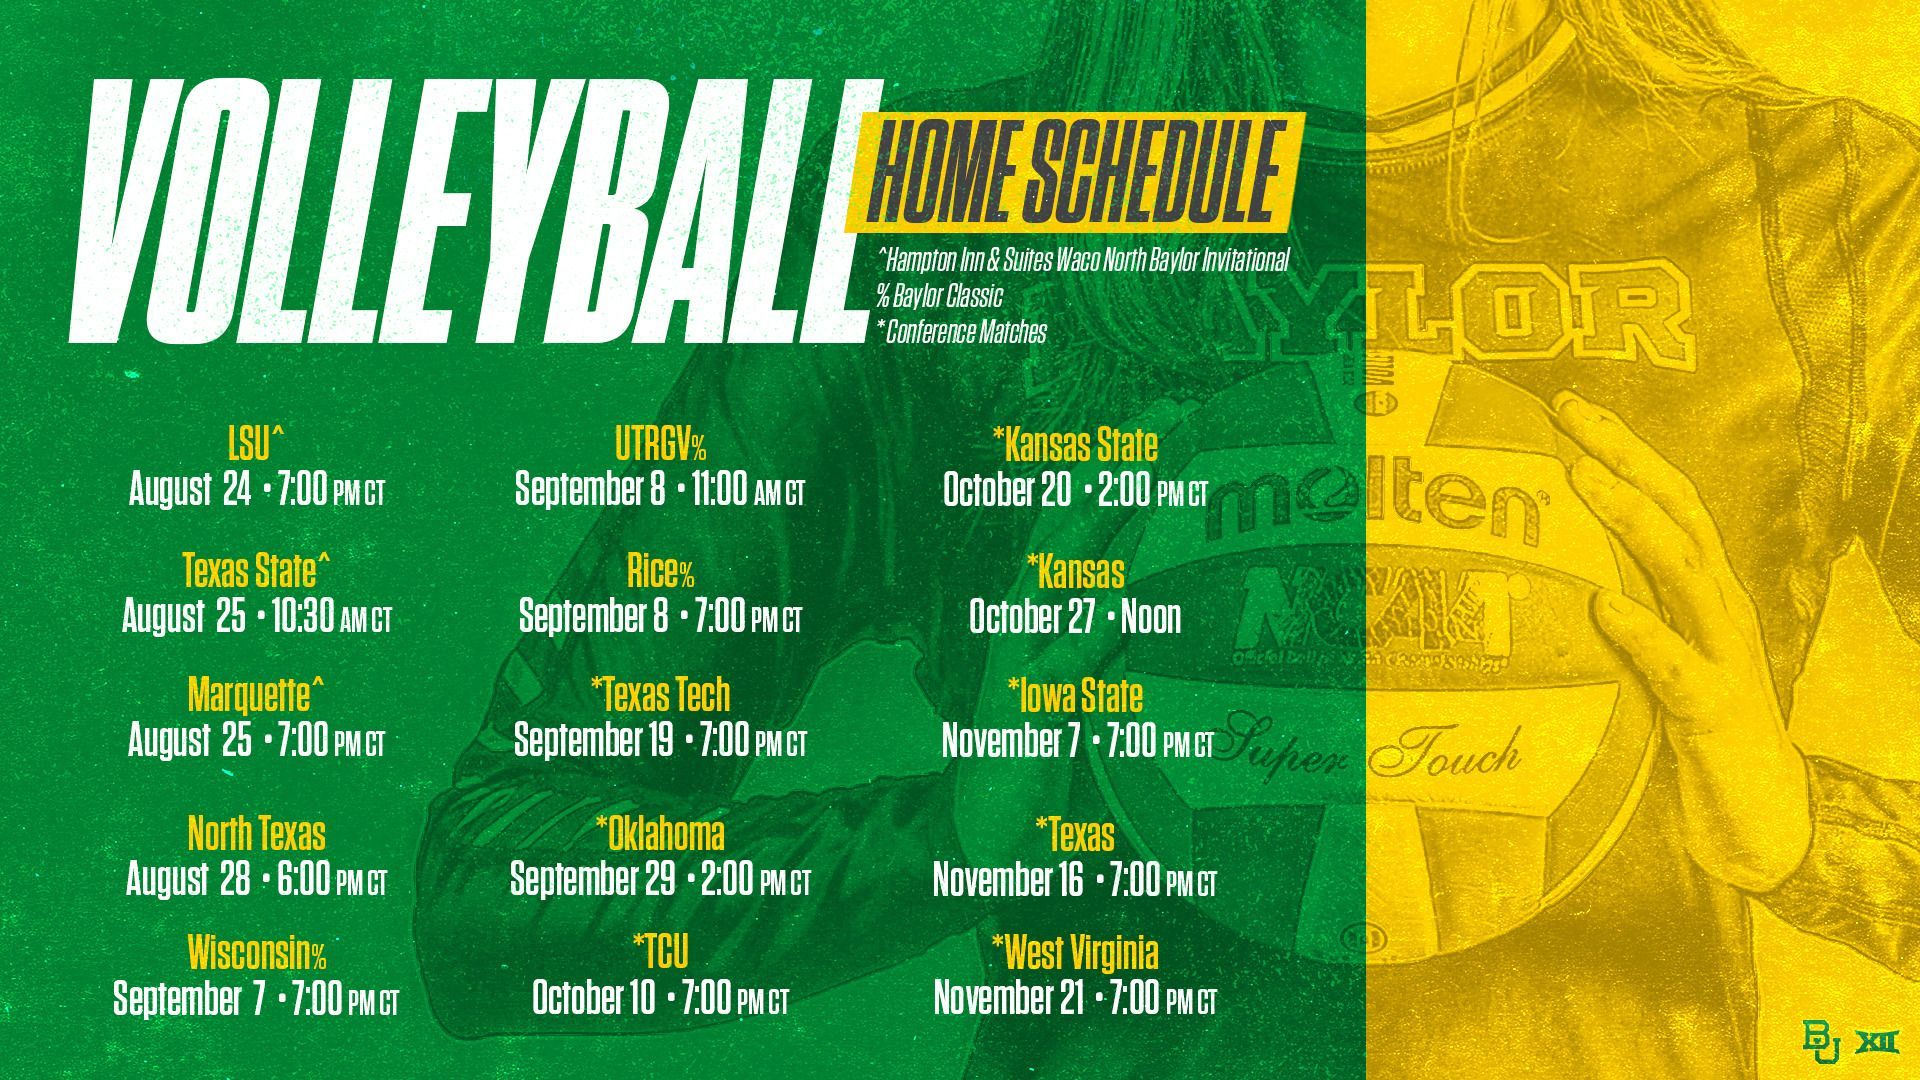 Baylor Volleyball Announces 2018 Fall Schedule Baylor University Volleyball Baylor